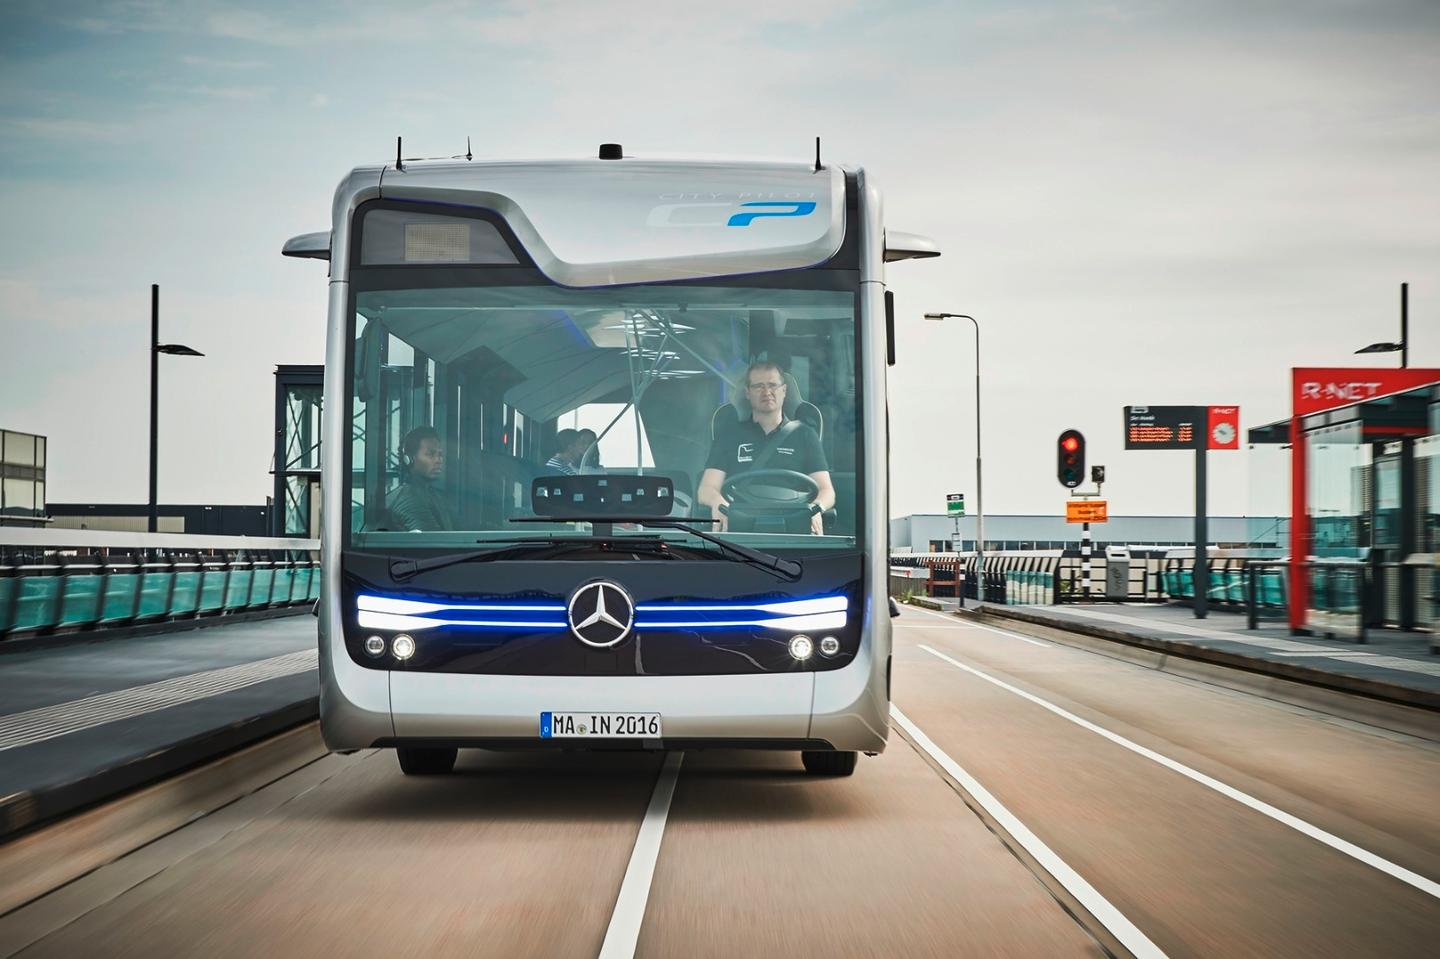 The bus is powered by a 220-kW (299-hp) Mercedes-Benz OM 936 in-line six-cylinder engine